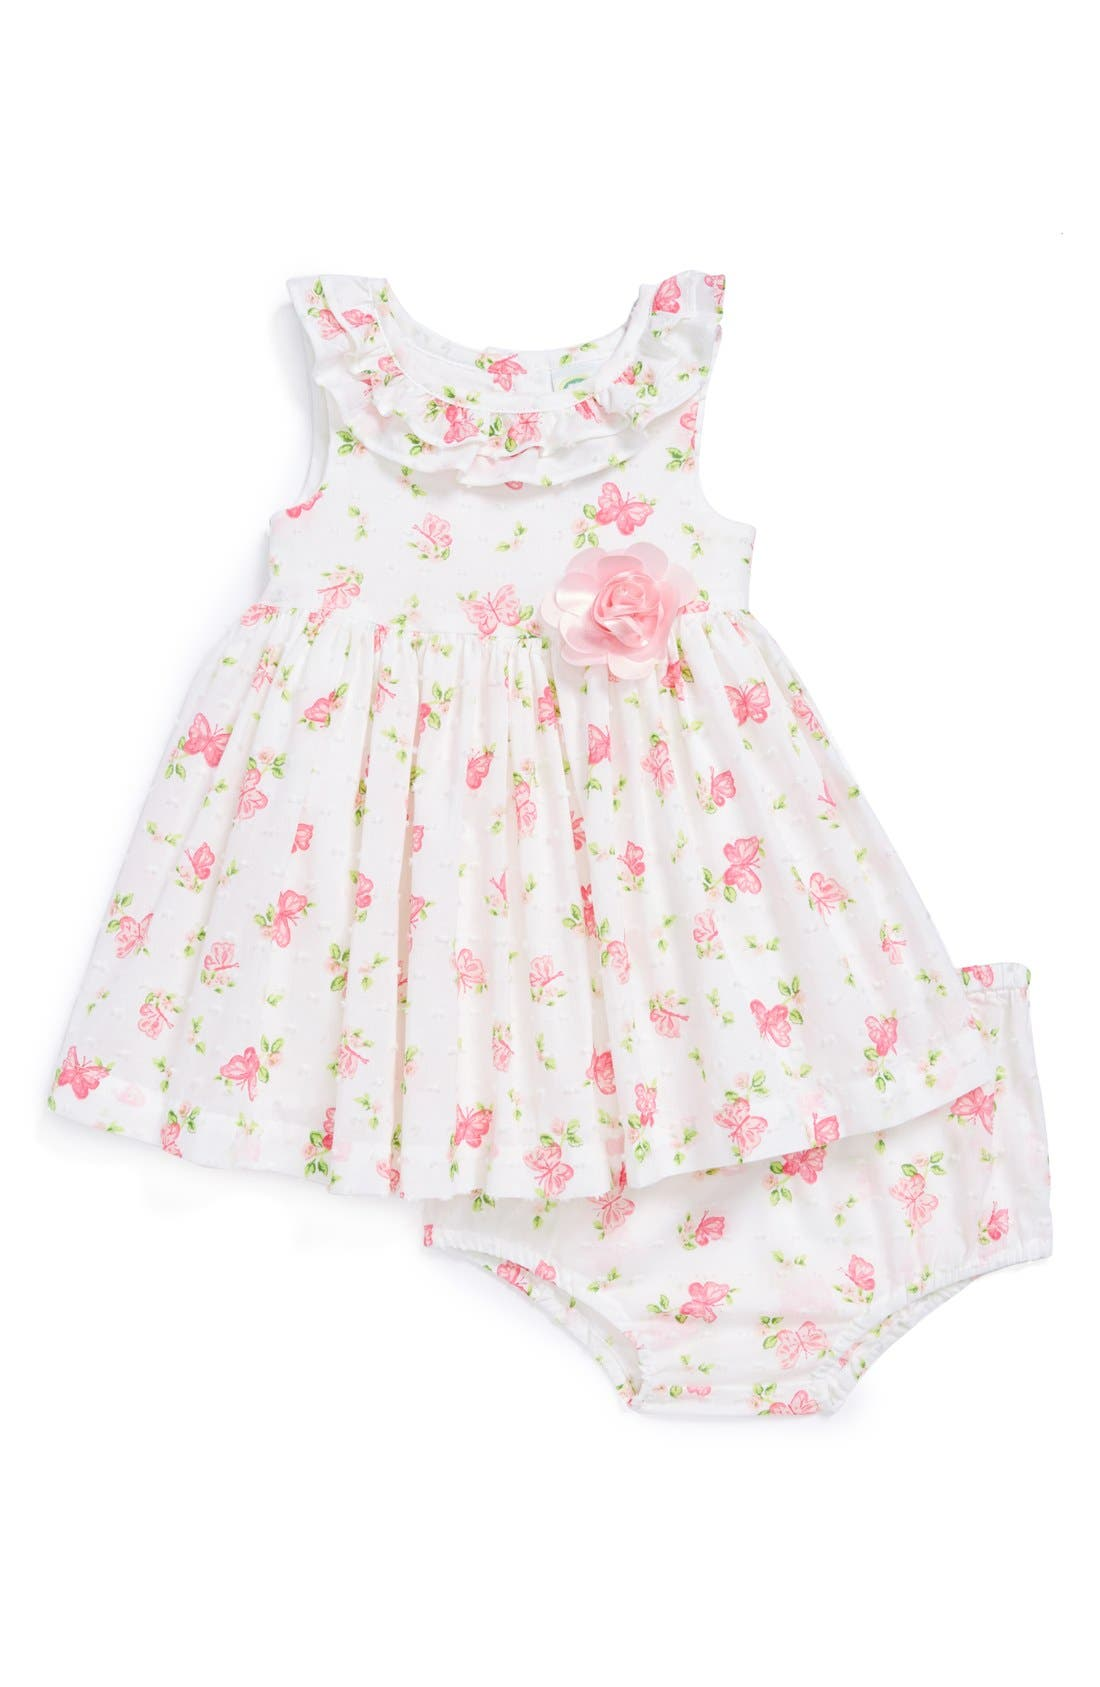 Main Image - Little Me 'Butterfly' Dress & Bloomers (Baby Girls)